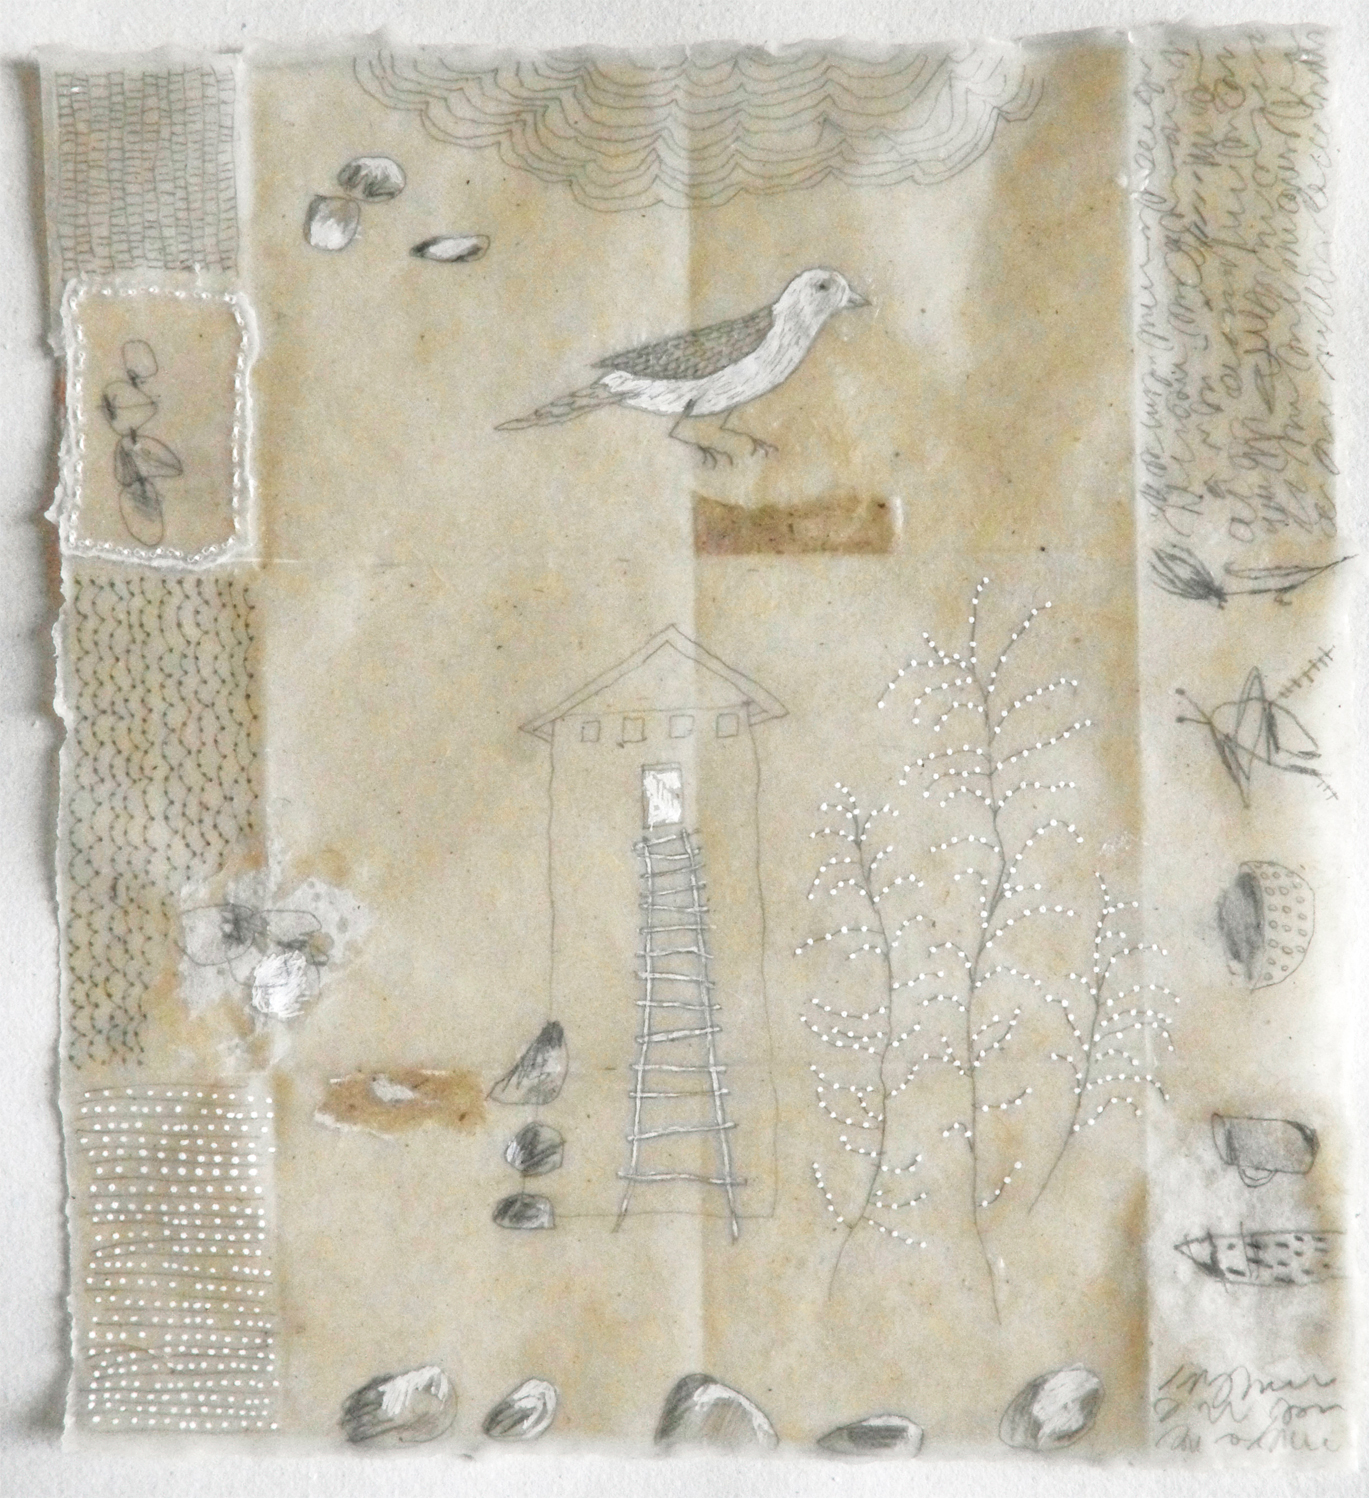 Notes From The Ancestors no.1 (graphite, ink, beeswax, collage, sewing on Japanese paper)